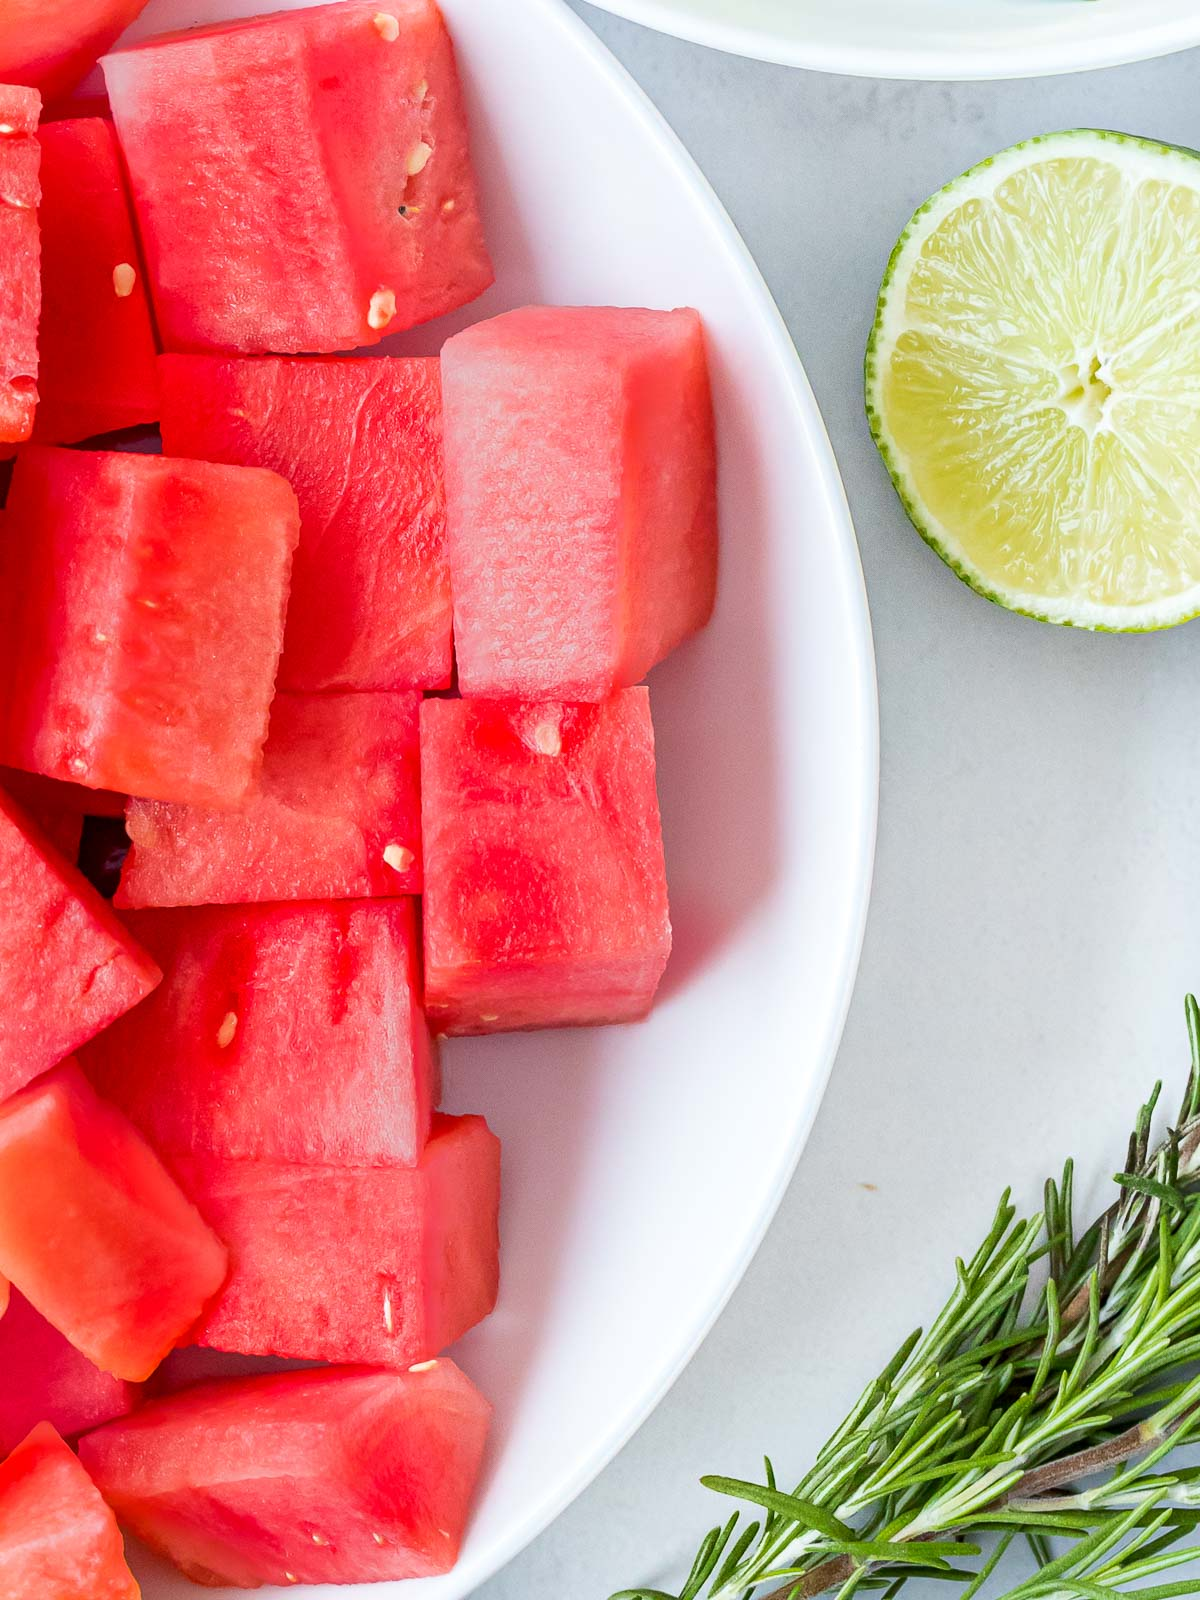 watermelon cut into pieces next to a lime and herbs